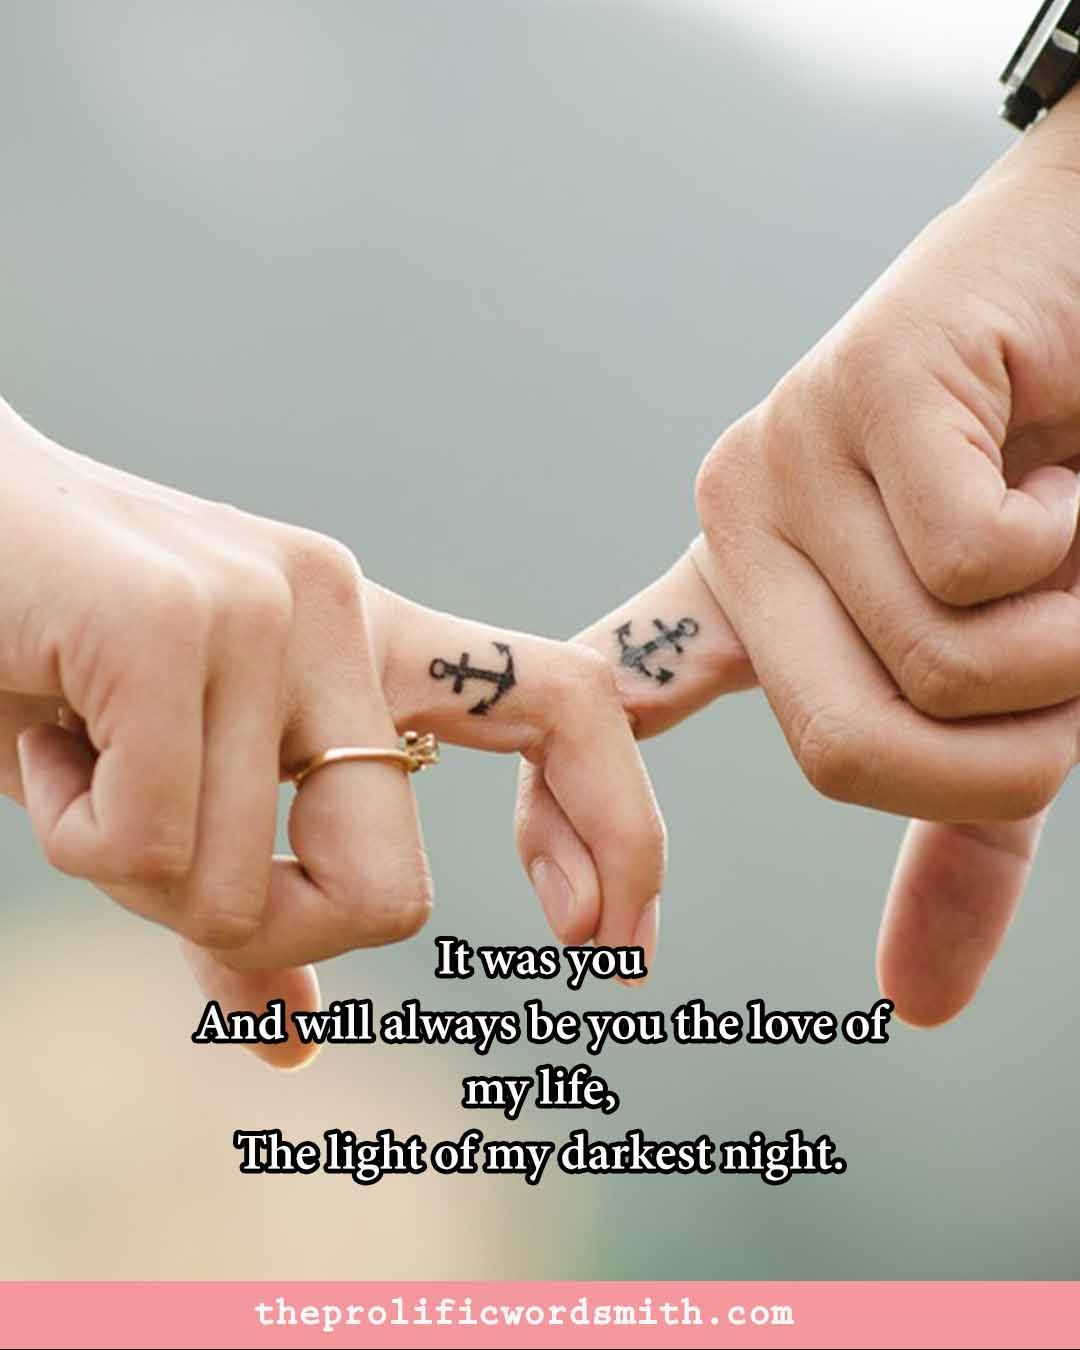 most romantic love quotes for her for instagram and facebook